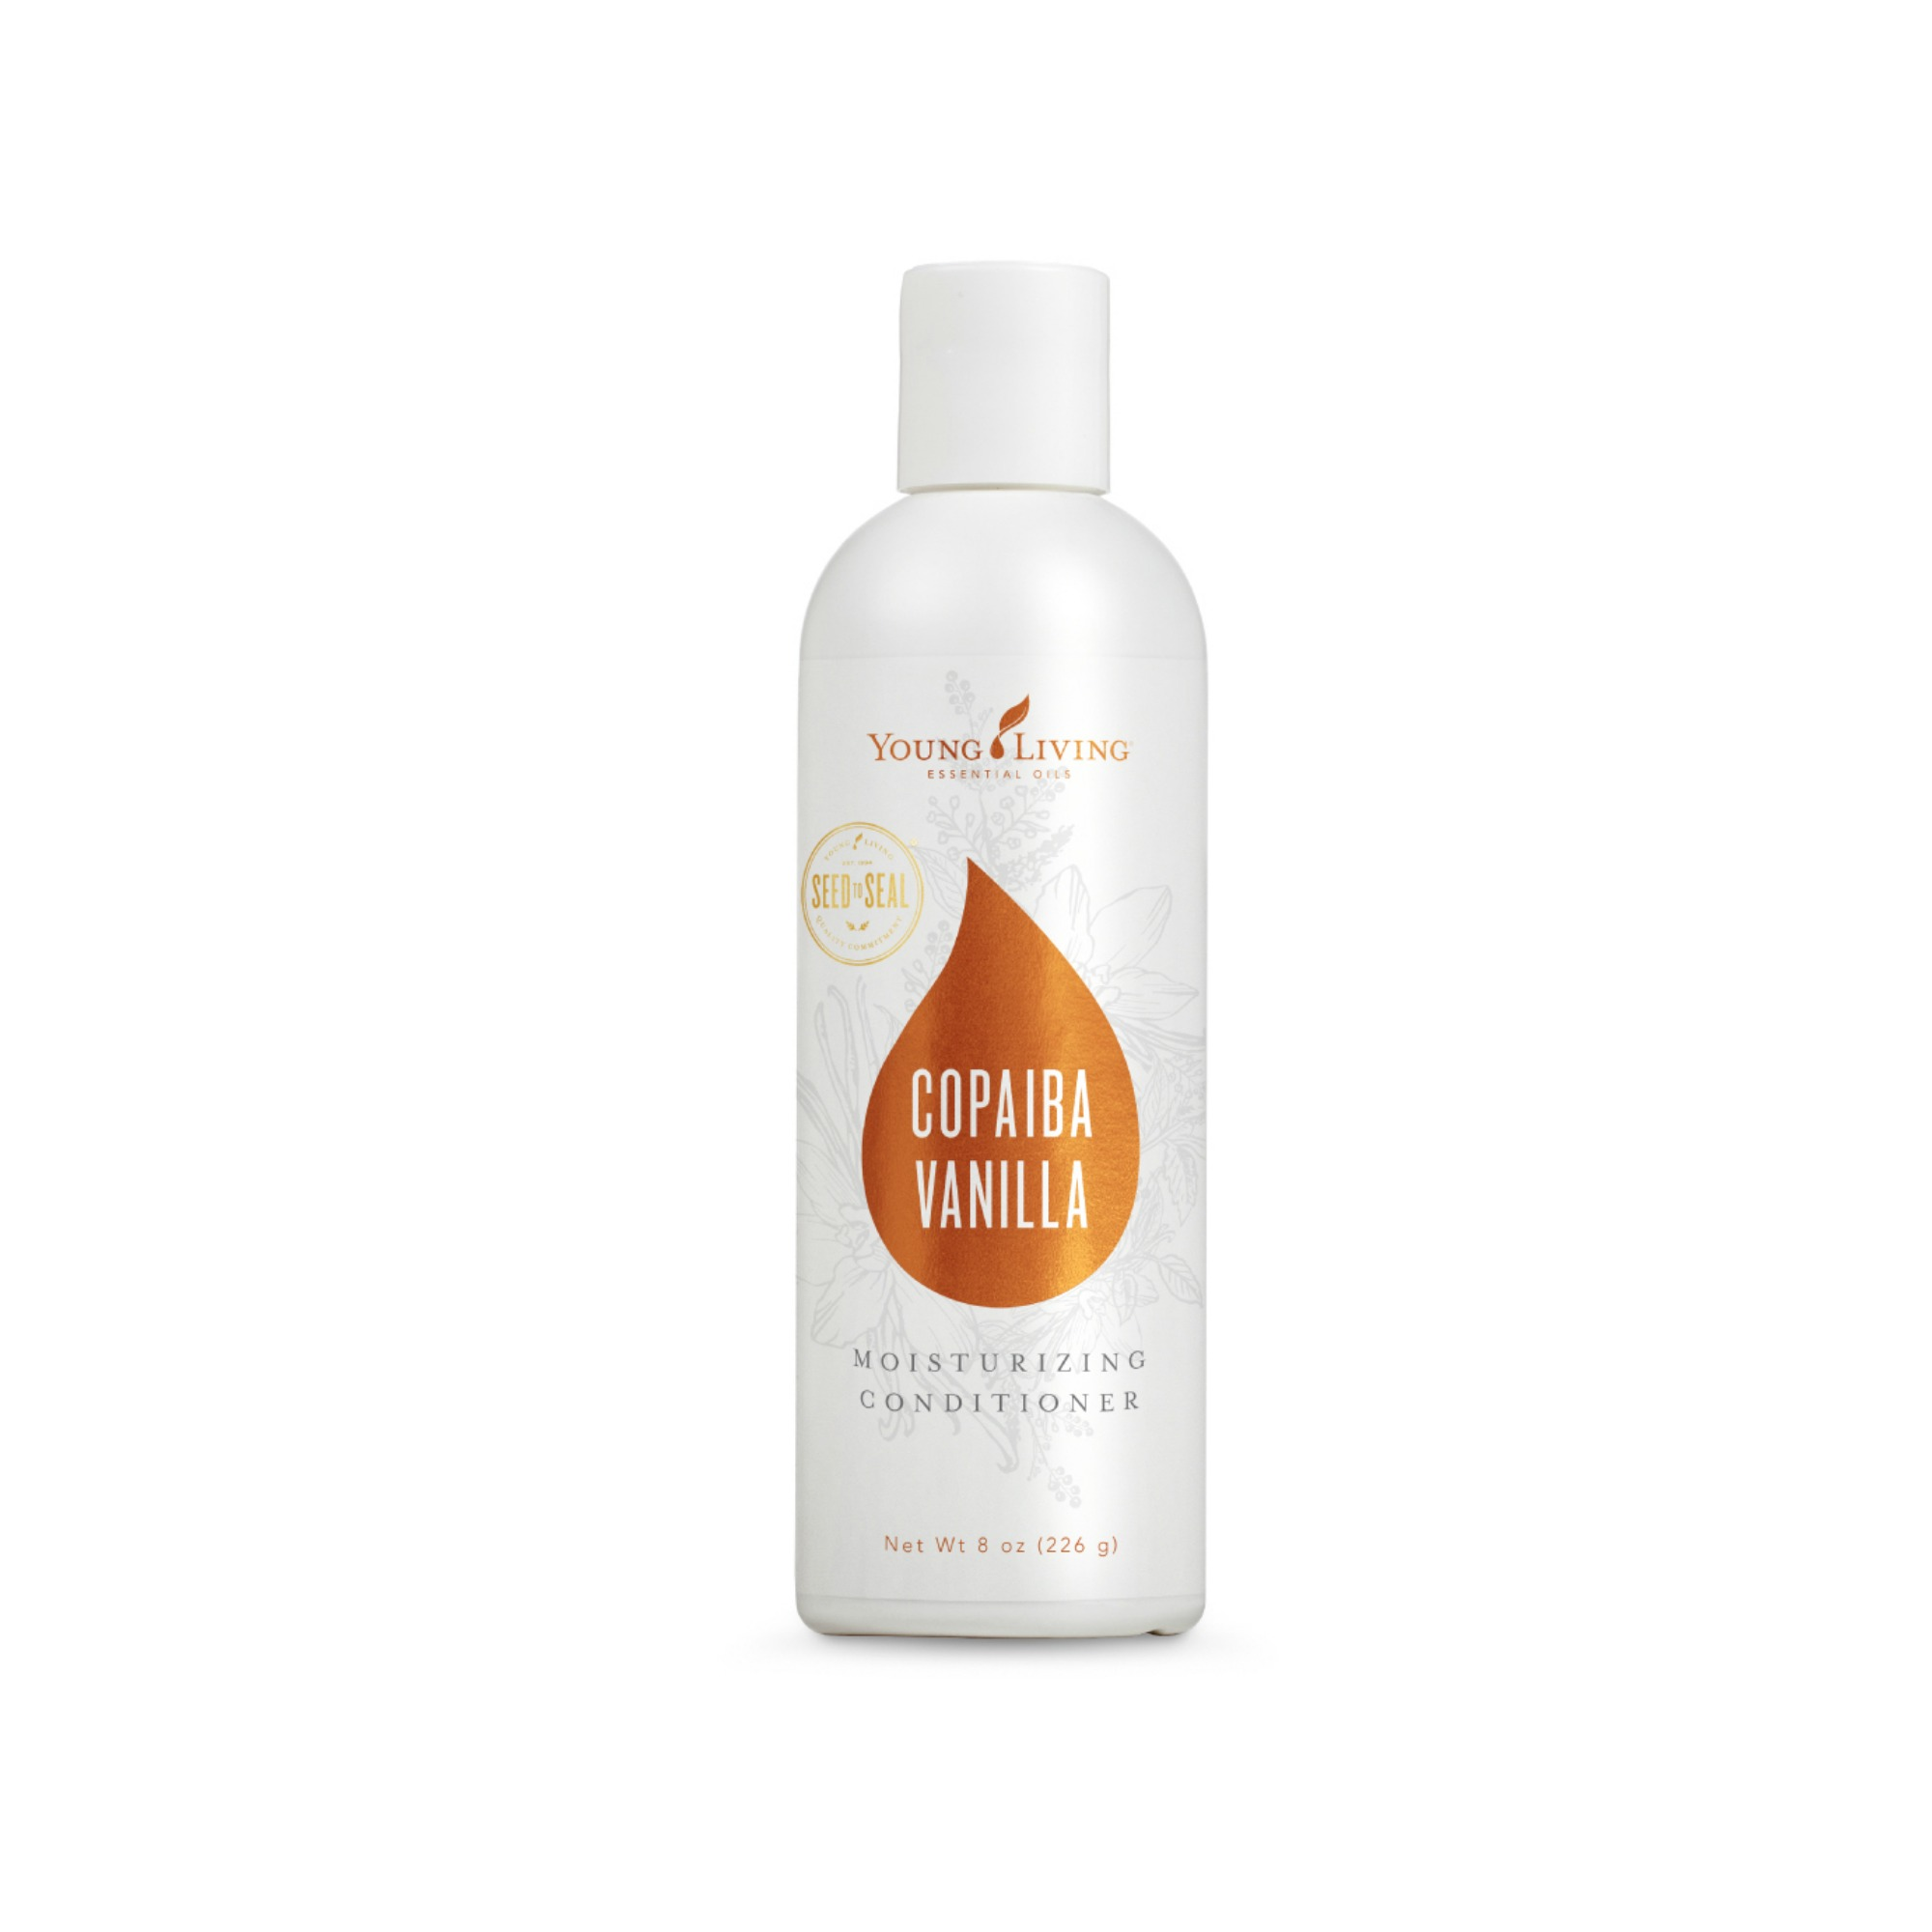 COPAIBA VANILLA CONDITIONER    Copaiba Vanilla Moisturizing Conditioner pairs perfectly with the Copaiba Vanilla Shampoo. It's a rich, hydrating cleanser for dry or damaged hair. With no hidden synthetic ingredients or harmful chemicals, this conditioner is one that is not only safe but effective. It has a warm, fresh smell with a hint of vanilla sweetness, leaving your hair smelling amazing after a bath or shower.   Click here   to learn more about this product.